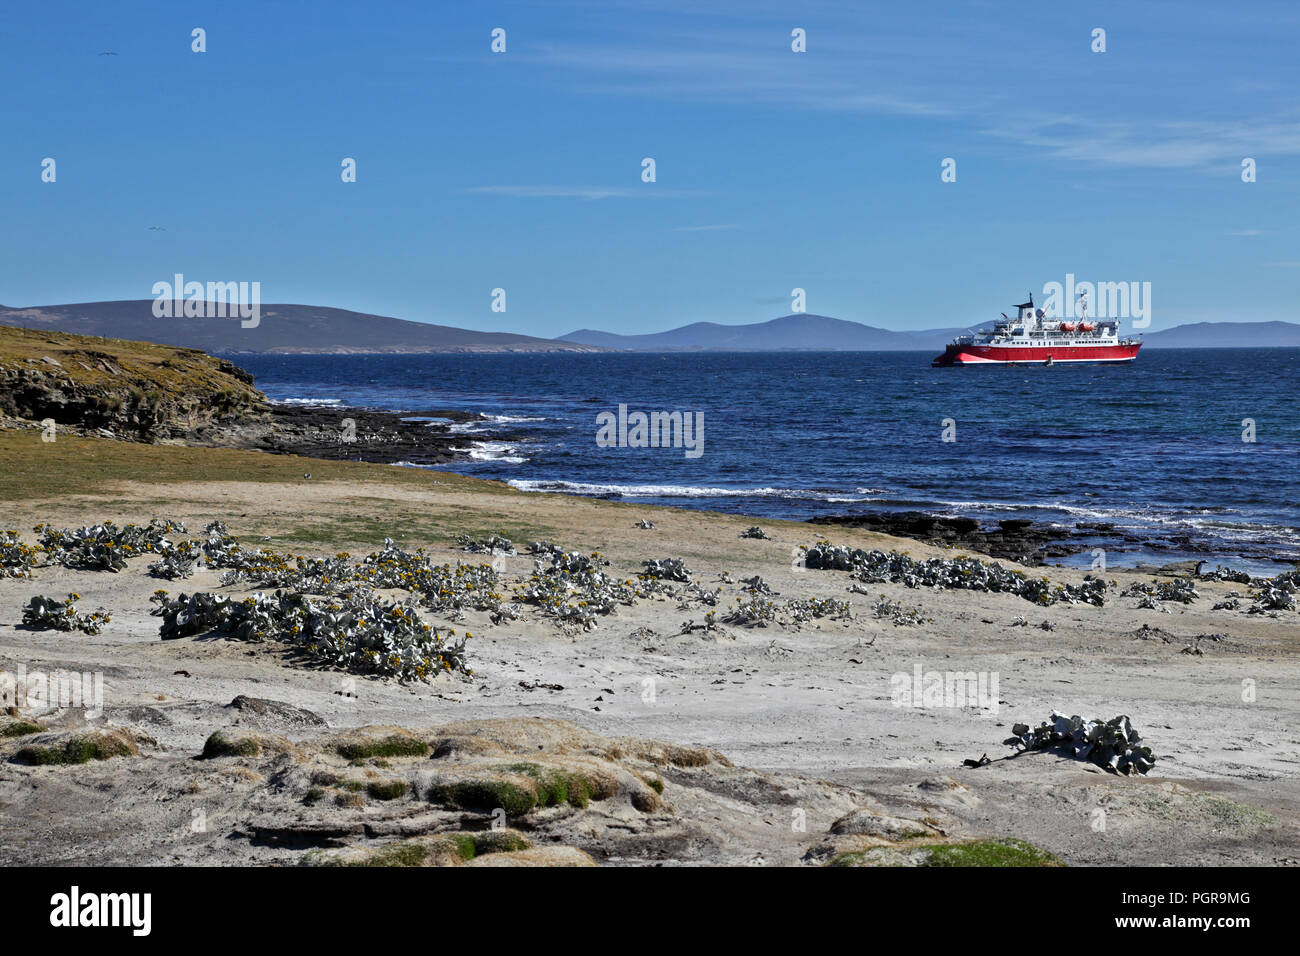 MS Expedition Passenger Ship seen from the beach at Saunders Island, the Falklands, Southern Ocean - Stock Image